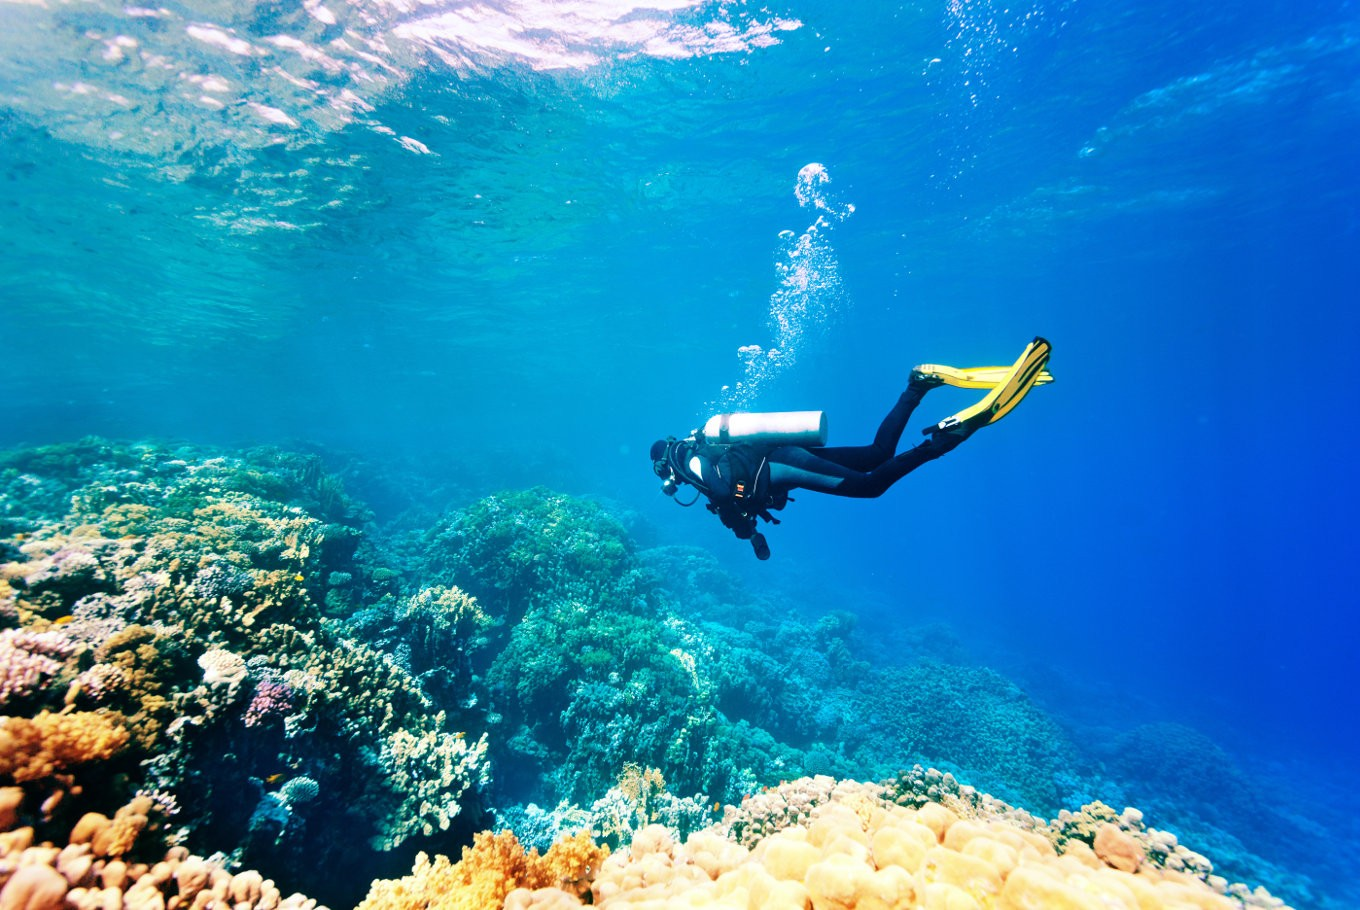 Diving Equipment That Must Be Used To Be Safe And Comfortable